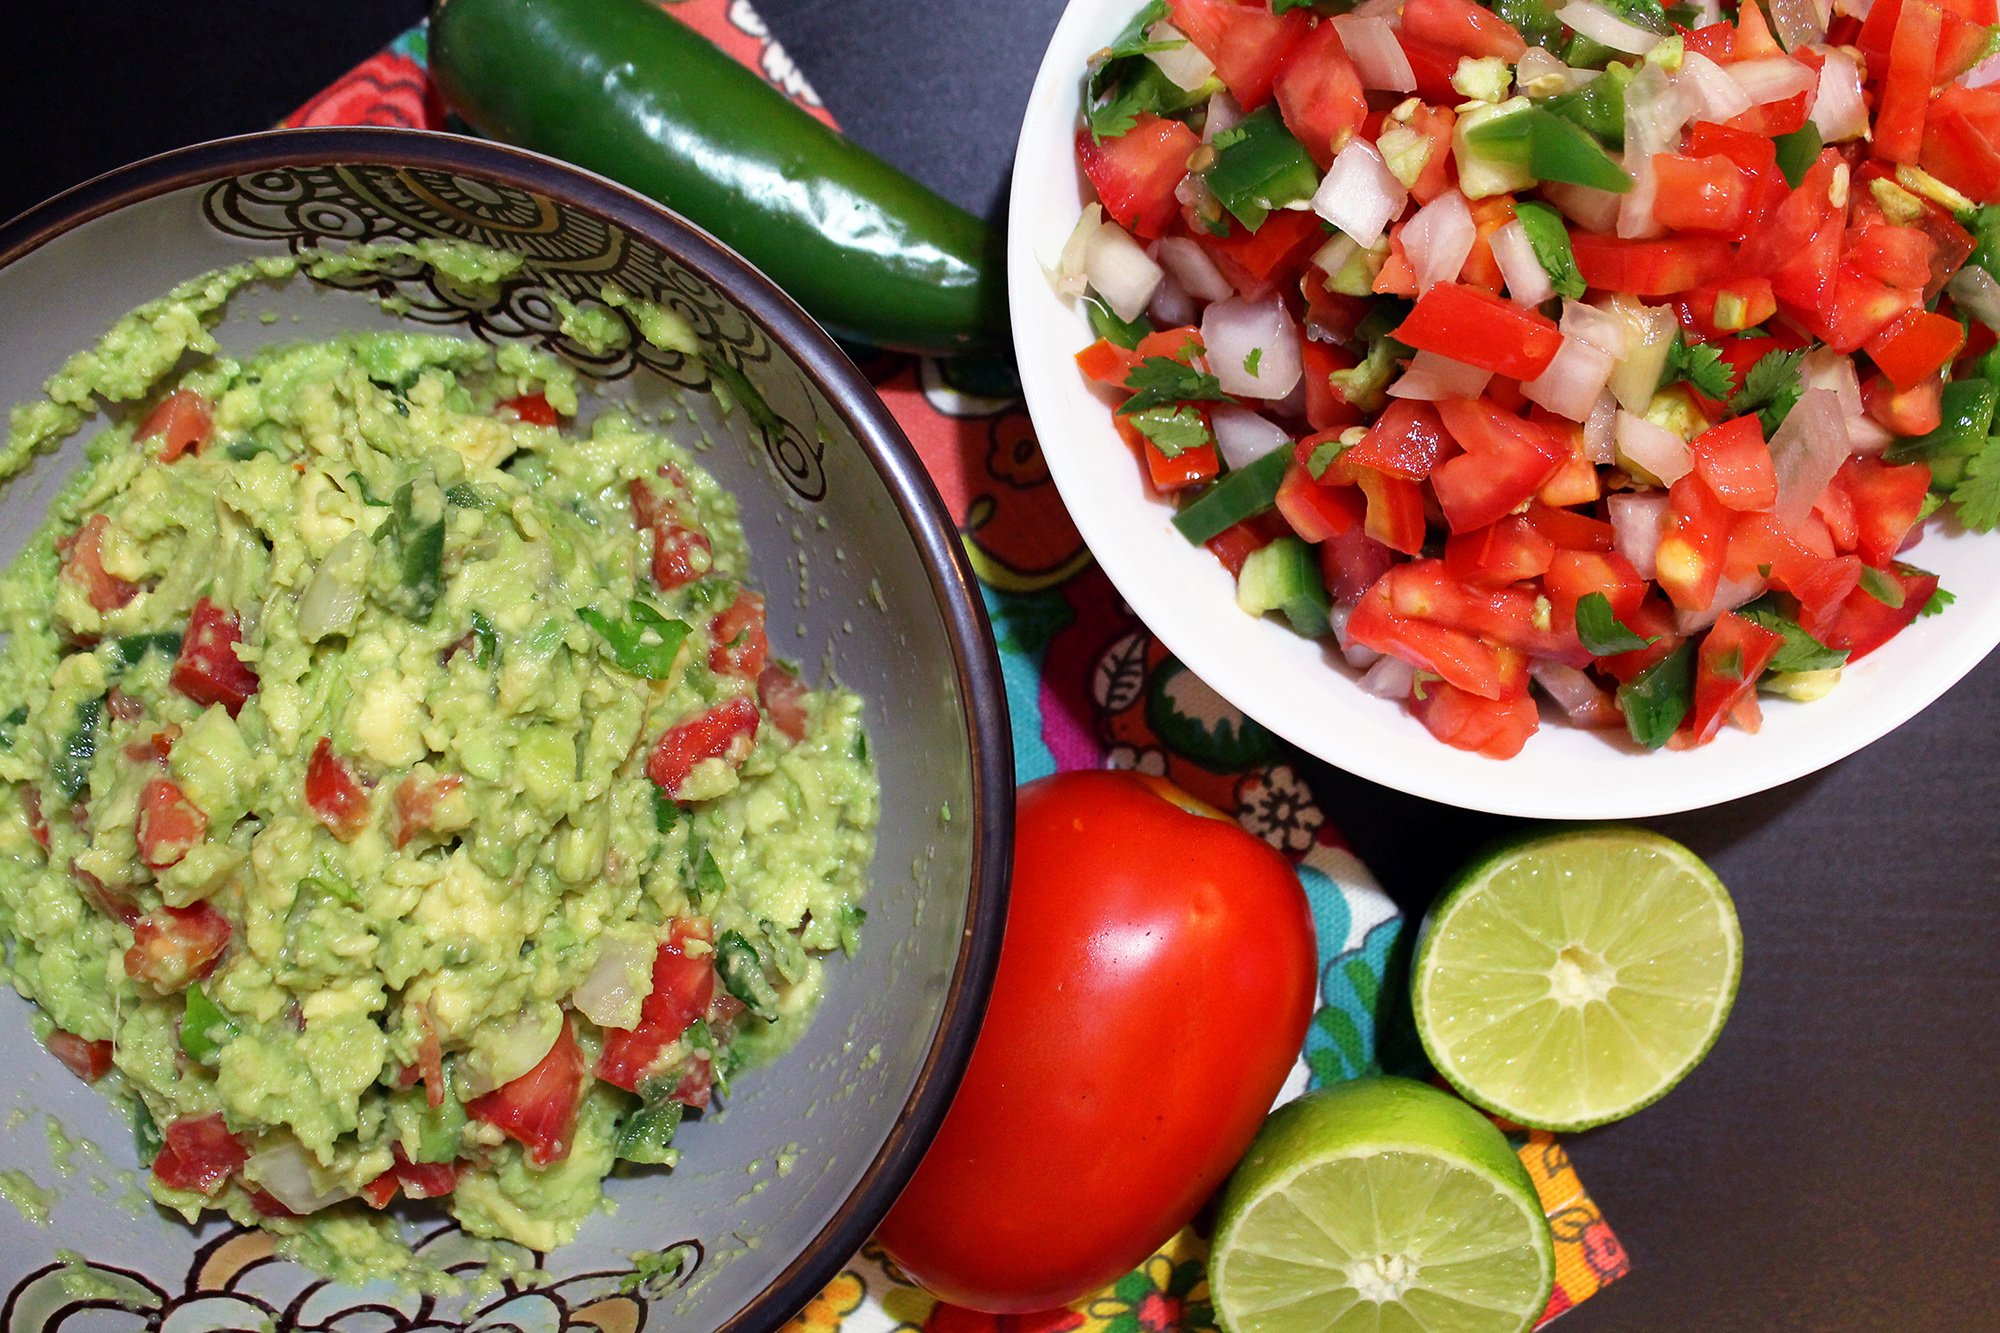 How To Make Guacamole And Pico De Gallo From Scratch